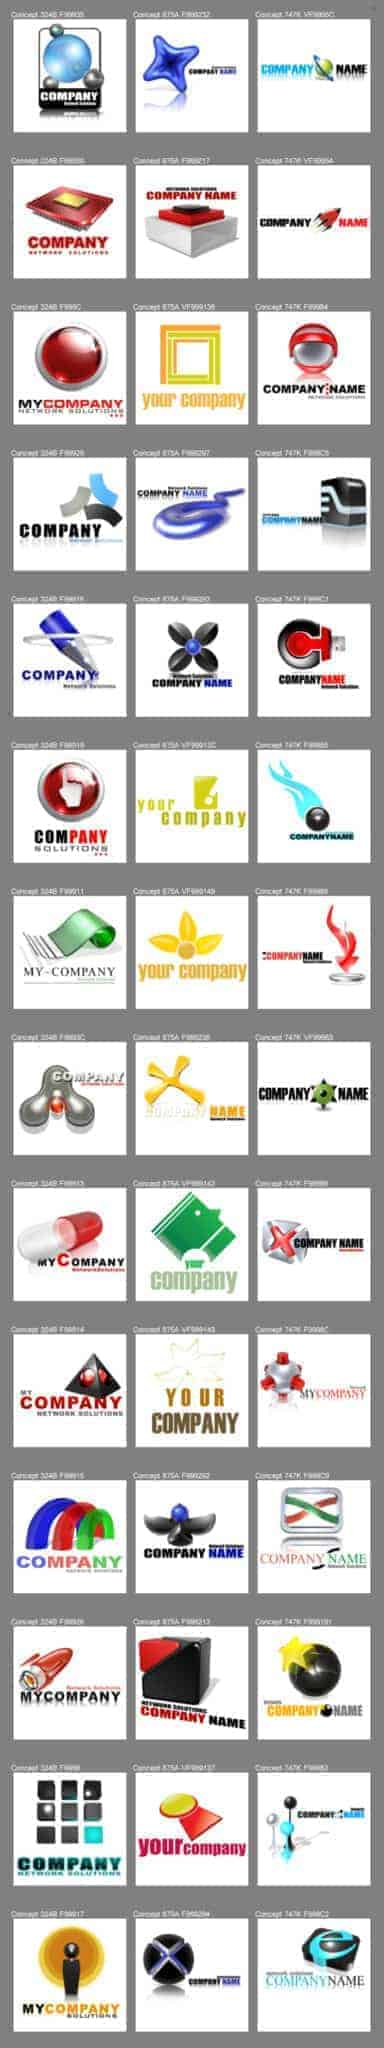 what elements go into making a logo great